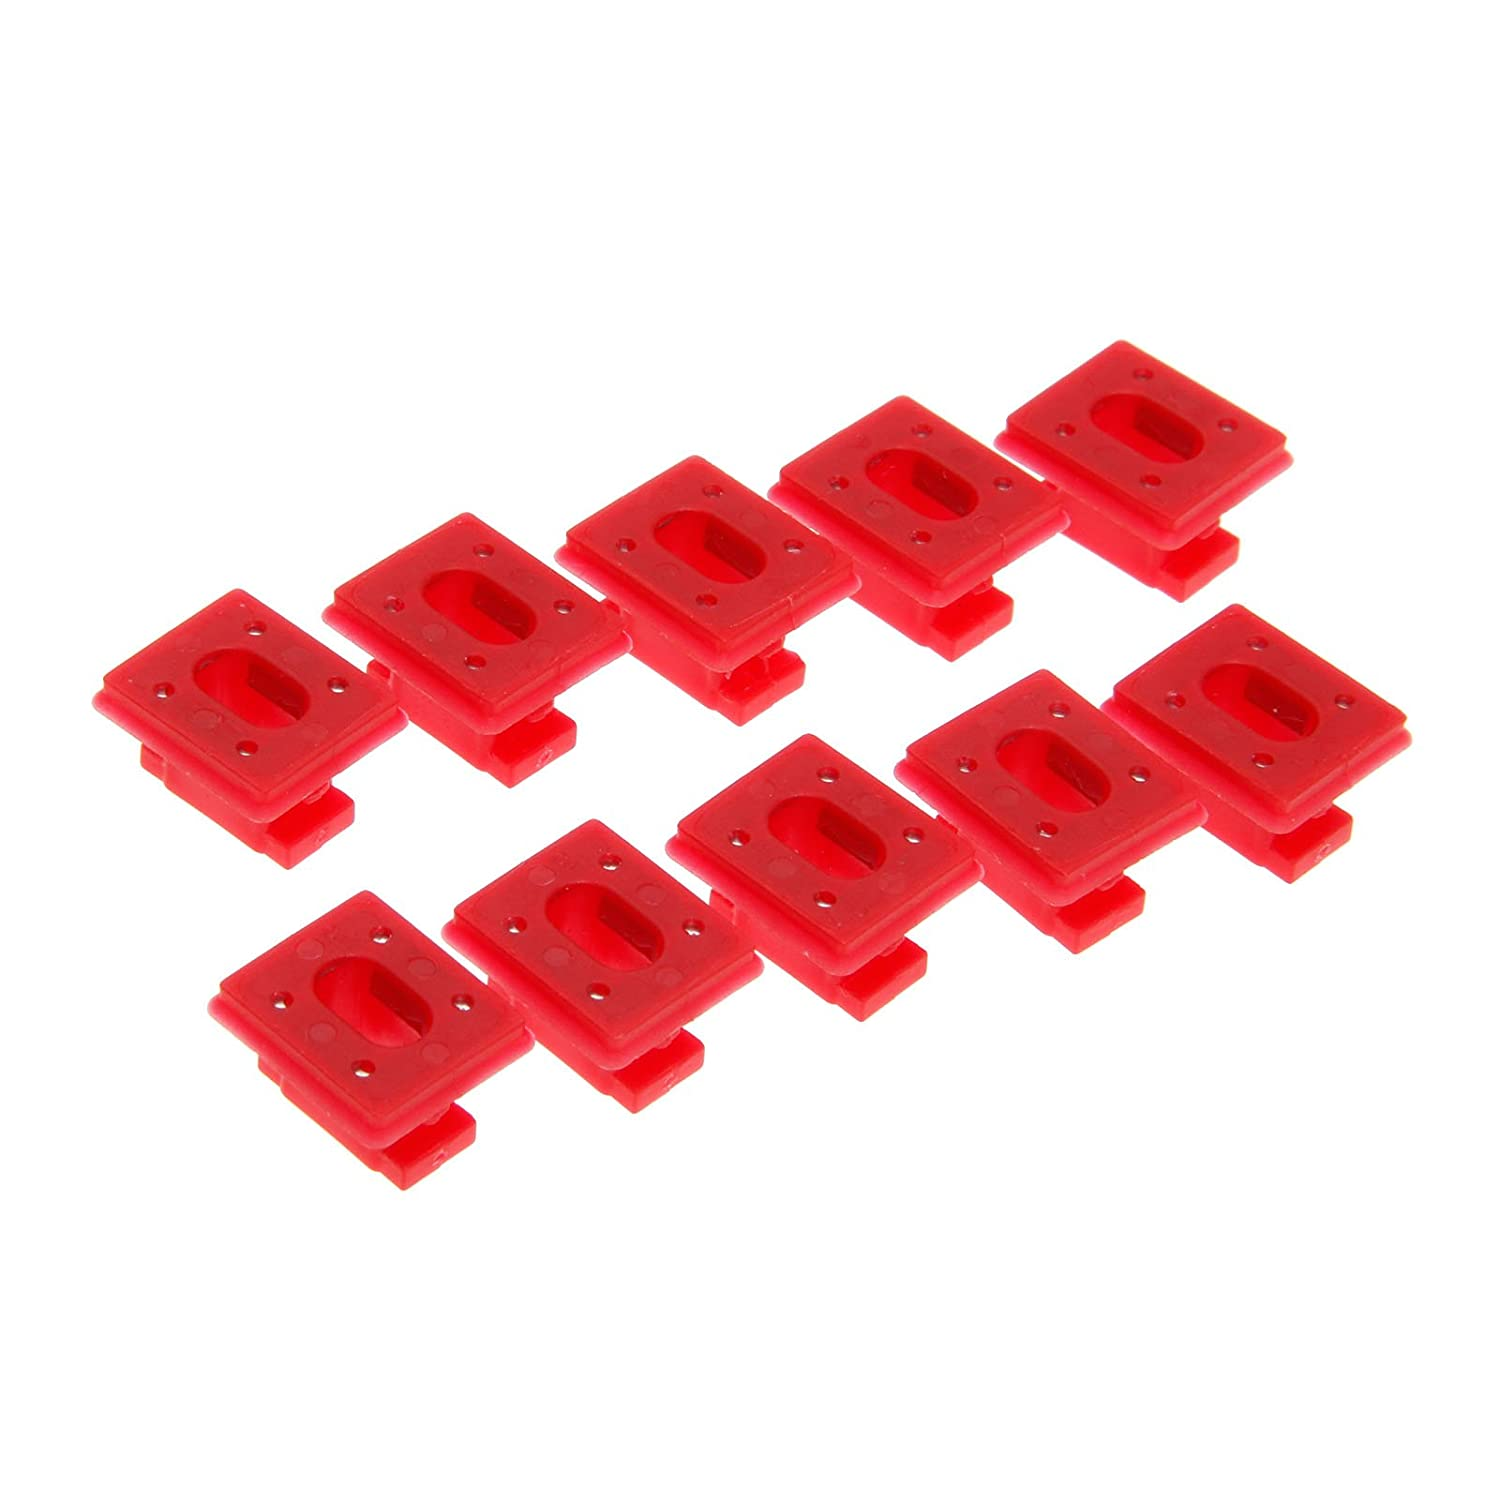 Mtsooning 10Pcs Dashboard Dash Trim Strip Inserts Clips Grommets for E46 3 E65 7 Series X3 E85